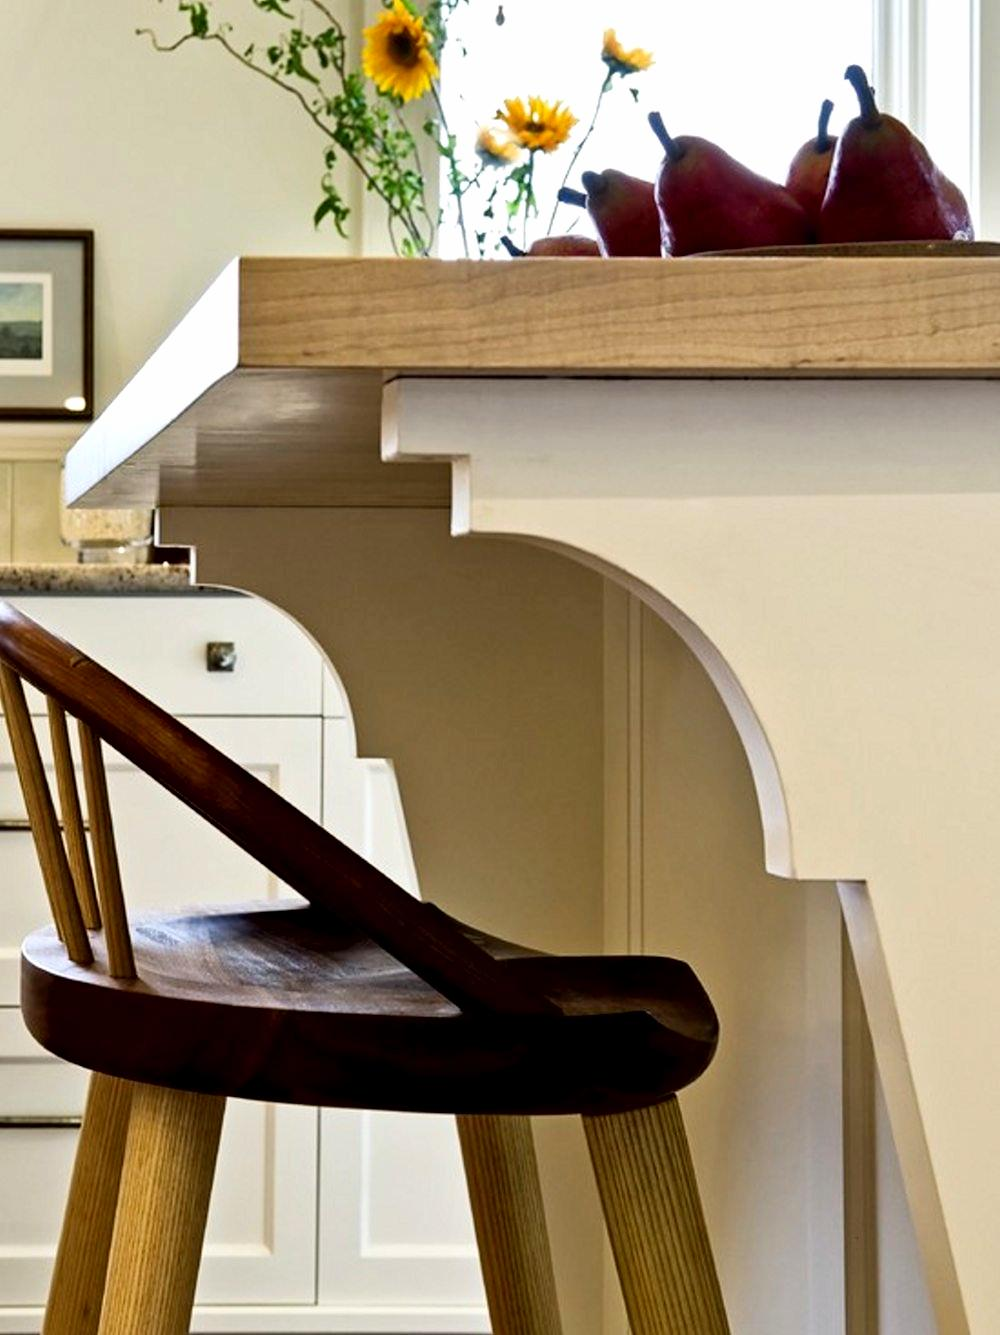 Kitchen Counter Corbel Installation Tips How To Build A